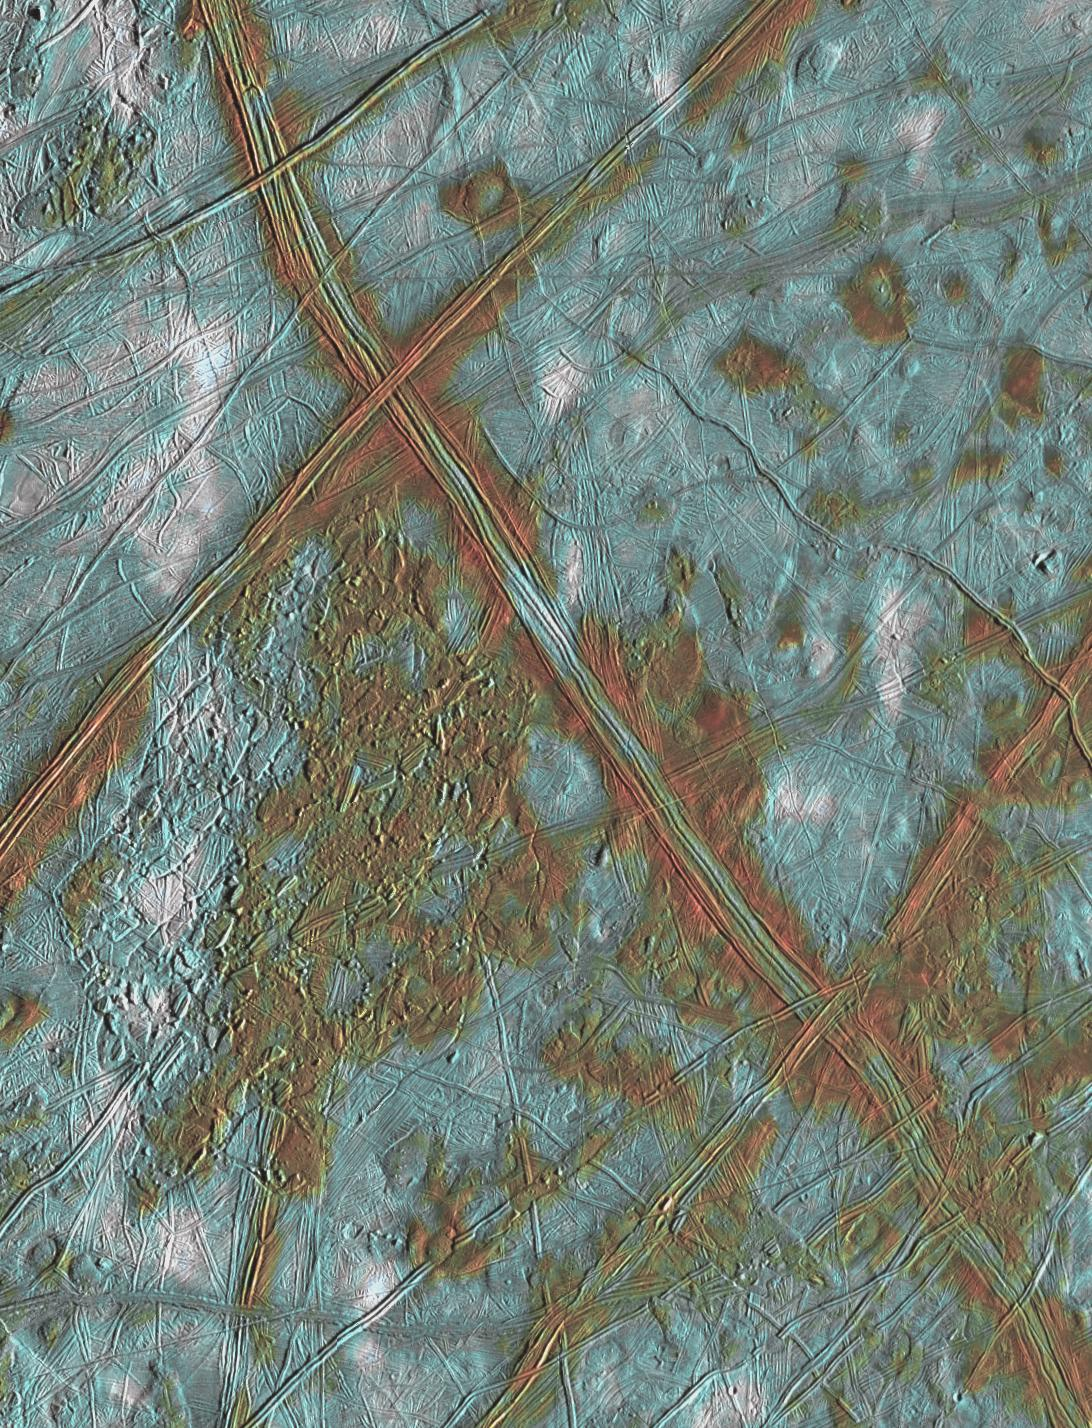 color view of complex terrain on an icy surface